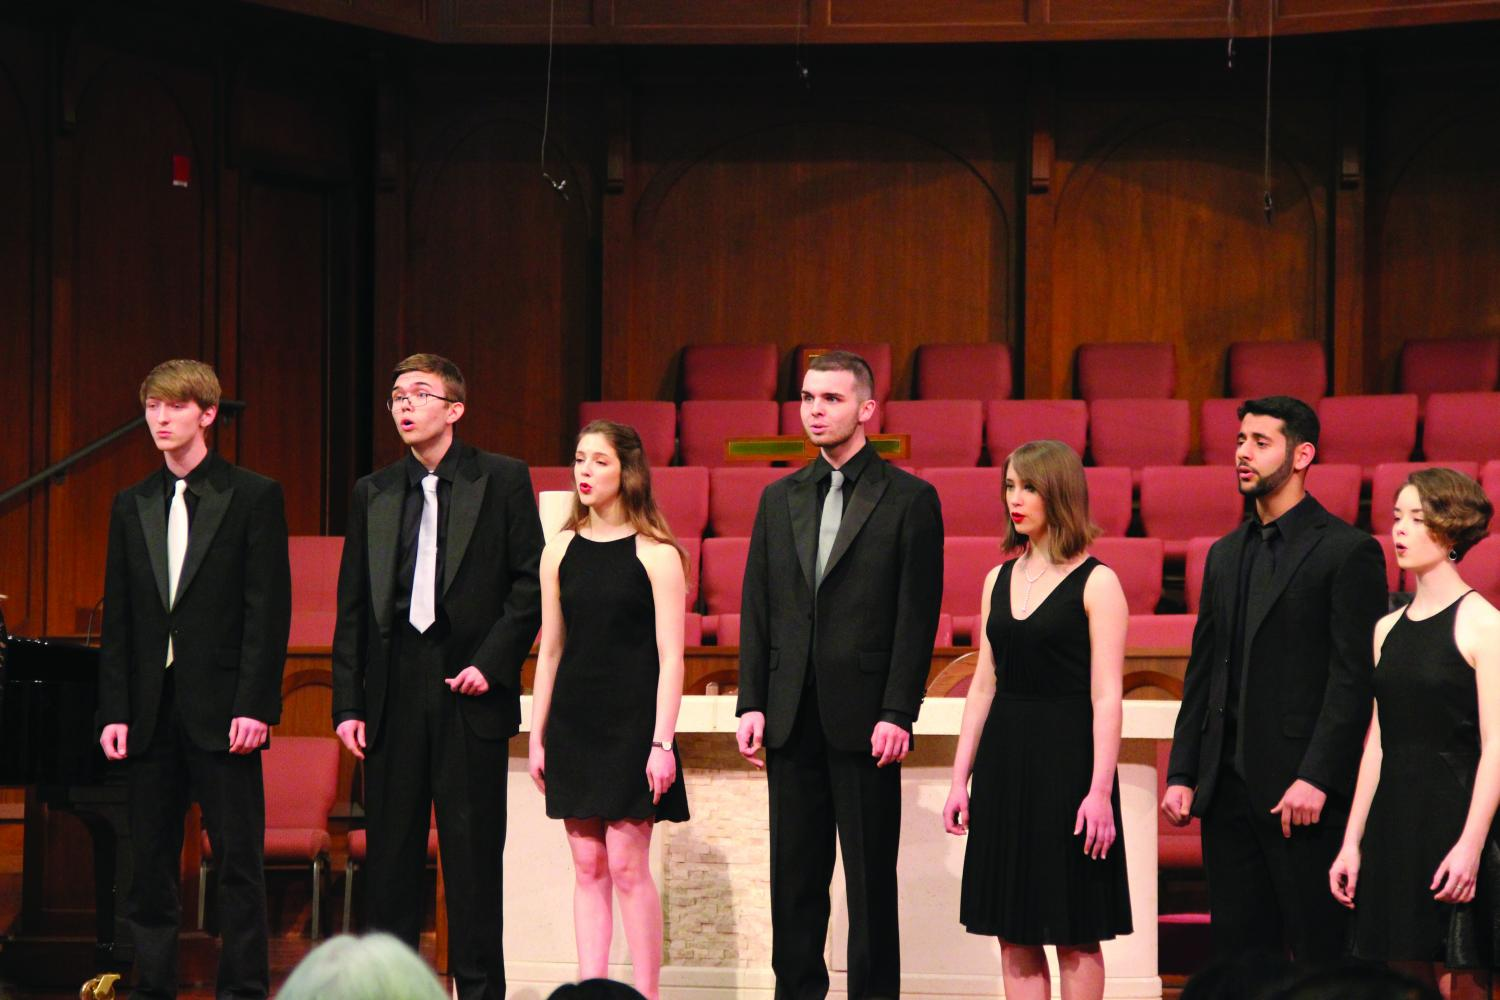 (Left to right) Seniors Sam Van Duyne, Jeffrey Kozlowski, Jenni Hutson, Zach Johnson, Heather Peters, Saman Maghami and junior Cannon McClure singing in the Chamber choir concert.